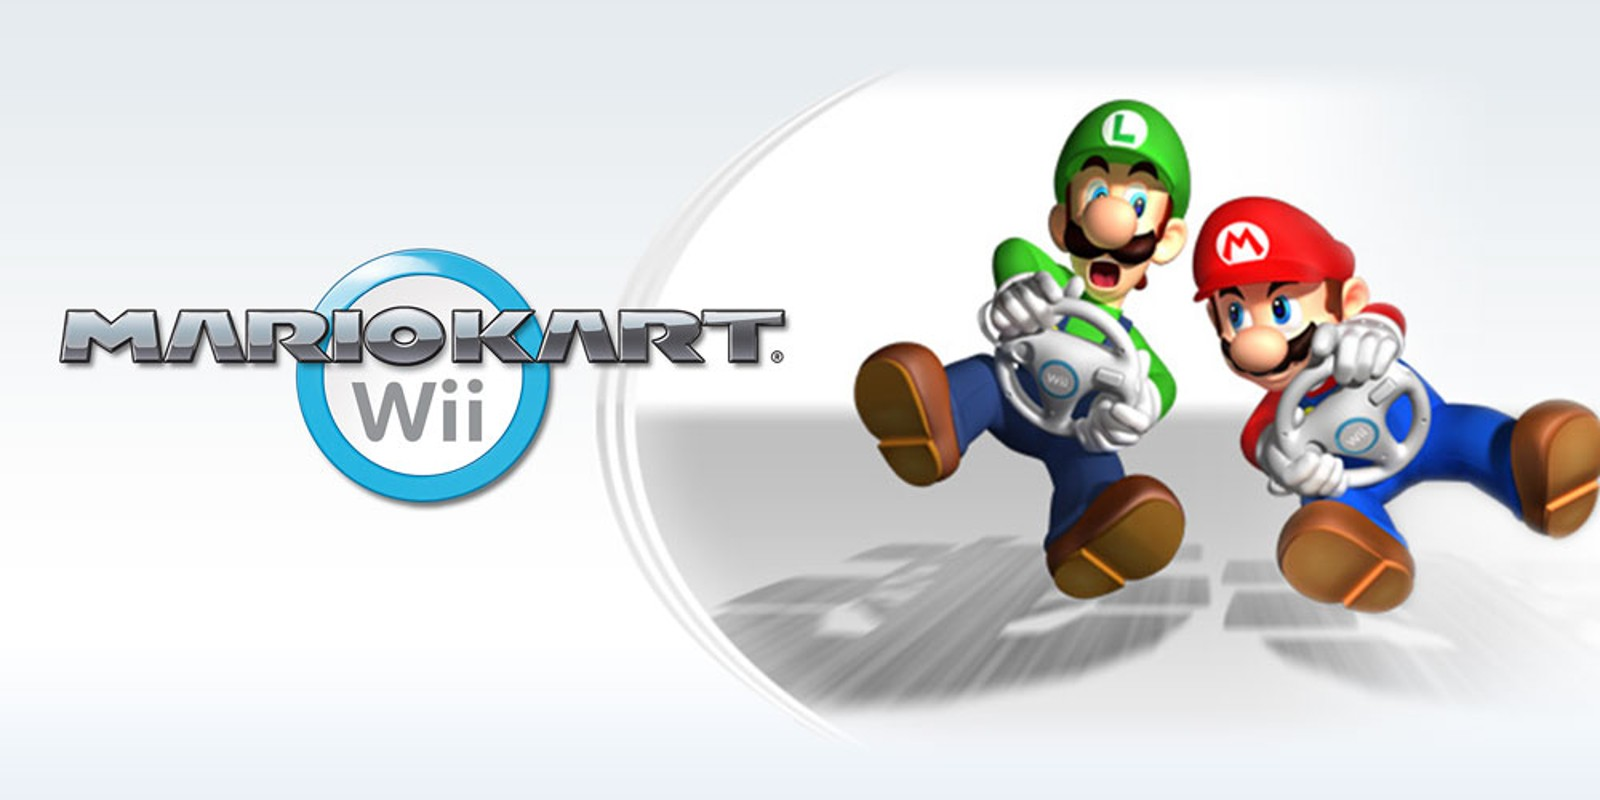 mario kart wii wii games nintendo super sport logo chevy supersport loto